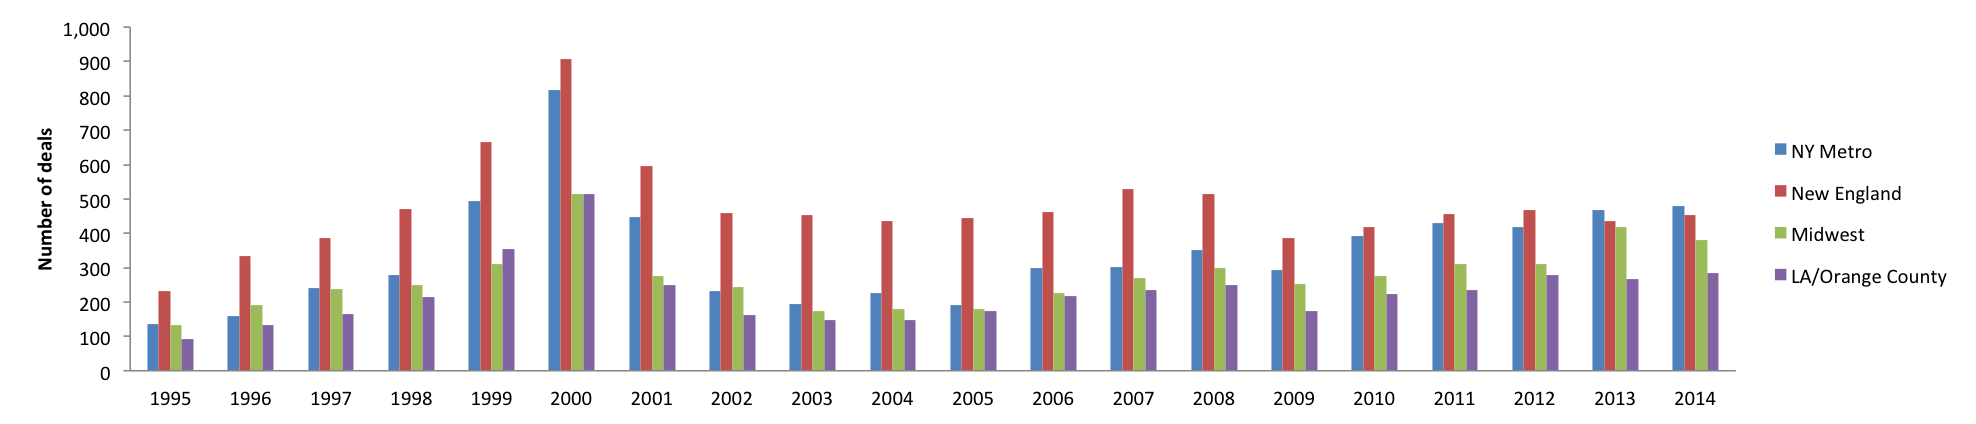 The rapid growth of VC deals in NY Metro, Midwest, and LA compared to stable growth in New England.